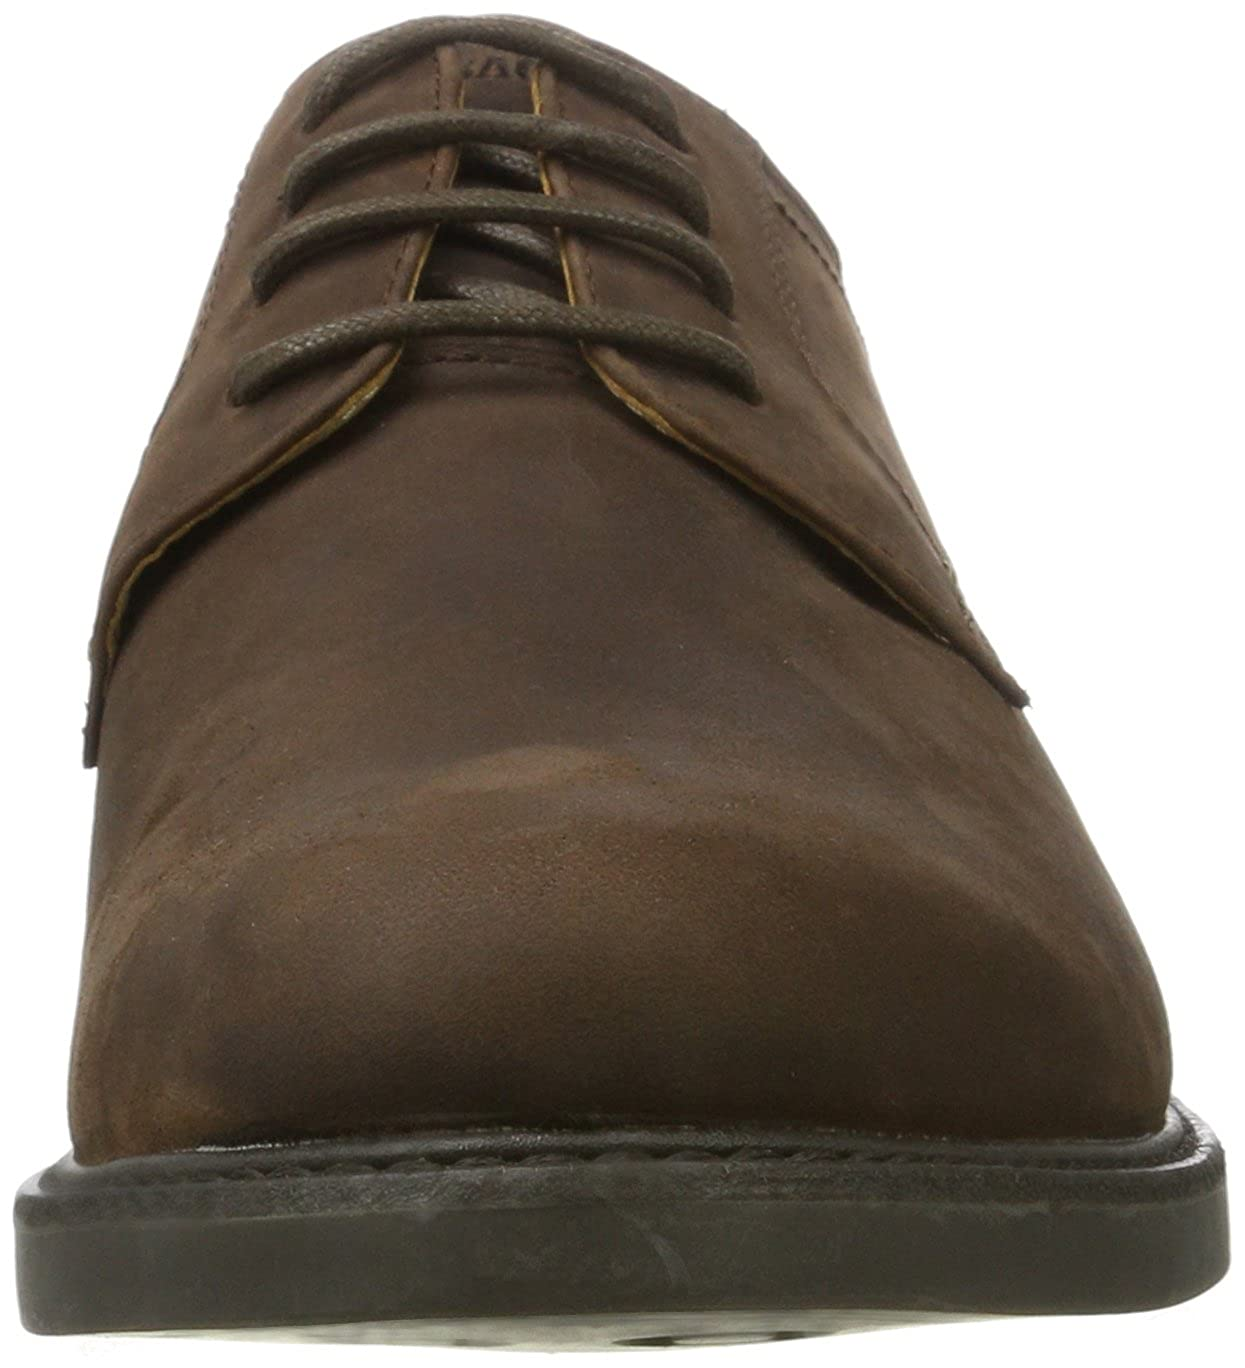 Sebago Turner Lace Up WP, Zapatos de Cordones Derby para Hombre: Amazon.es: Zapatos y complementos